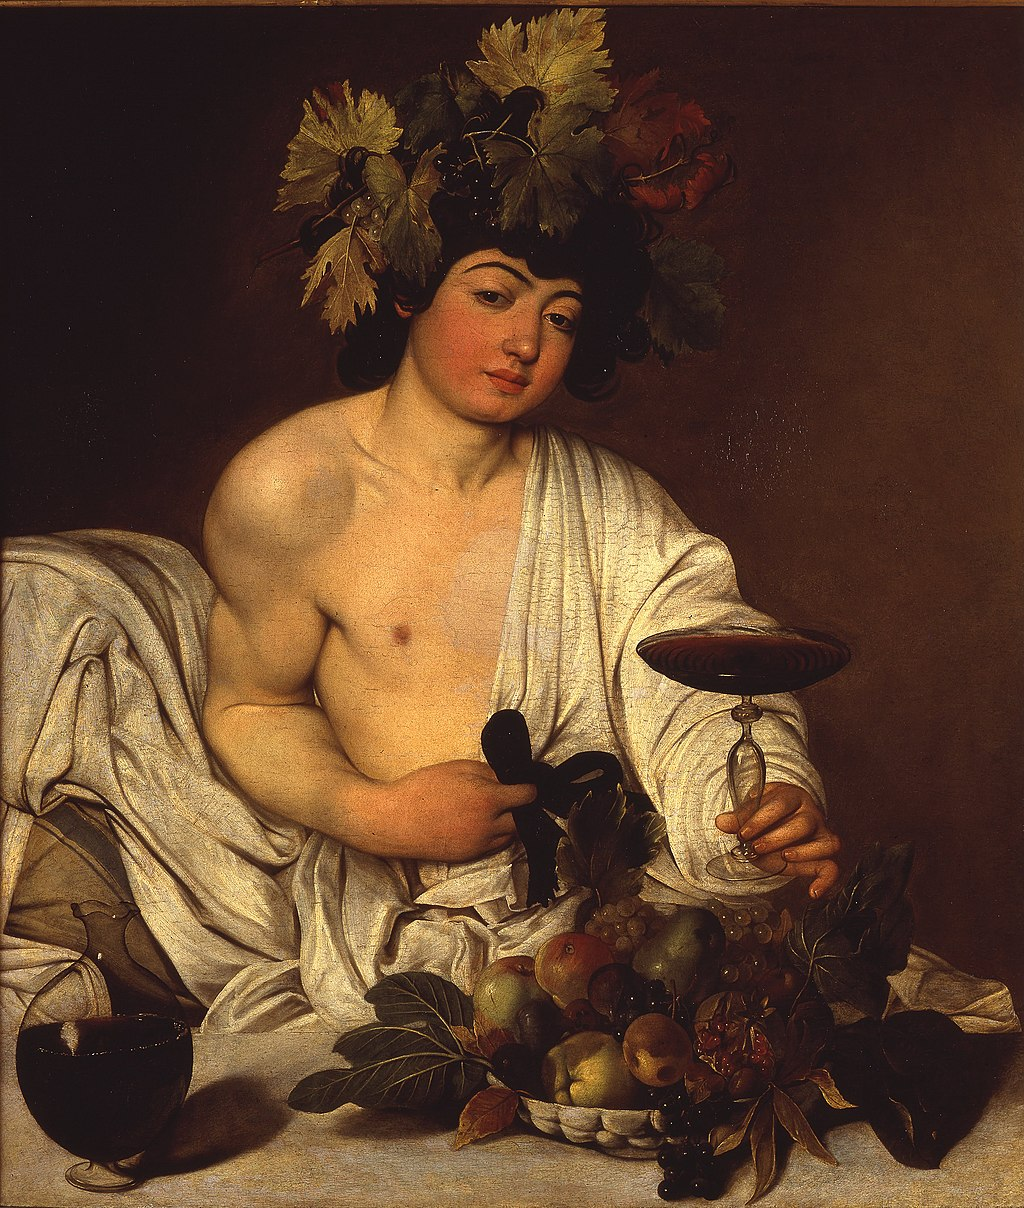 Giovane Bacco (Young Baccus by Caravaggio)